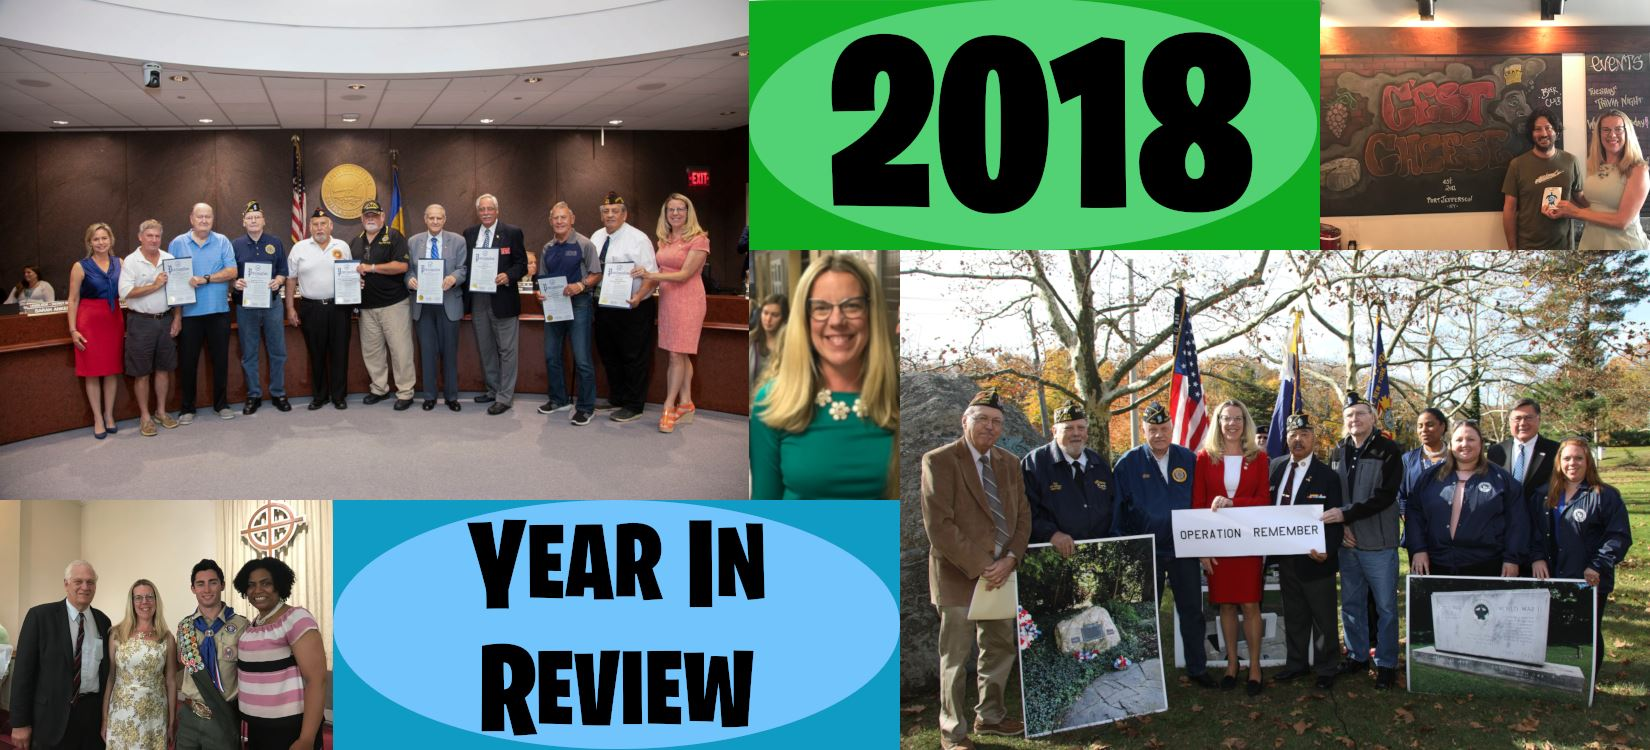 2018 Year In Review Collage Photo Top